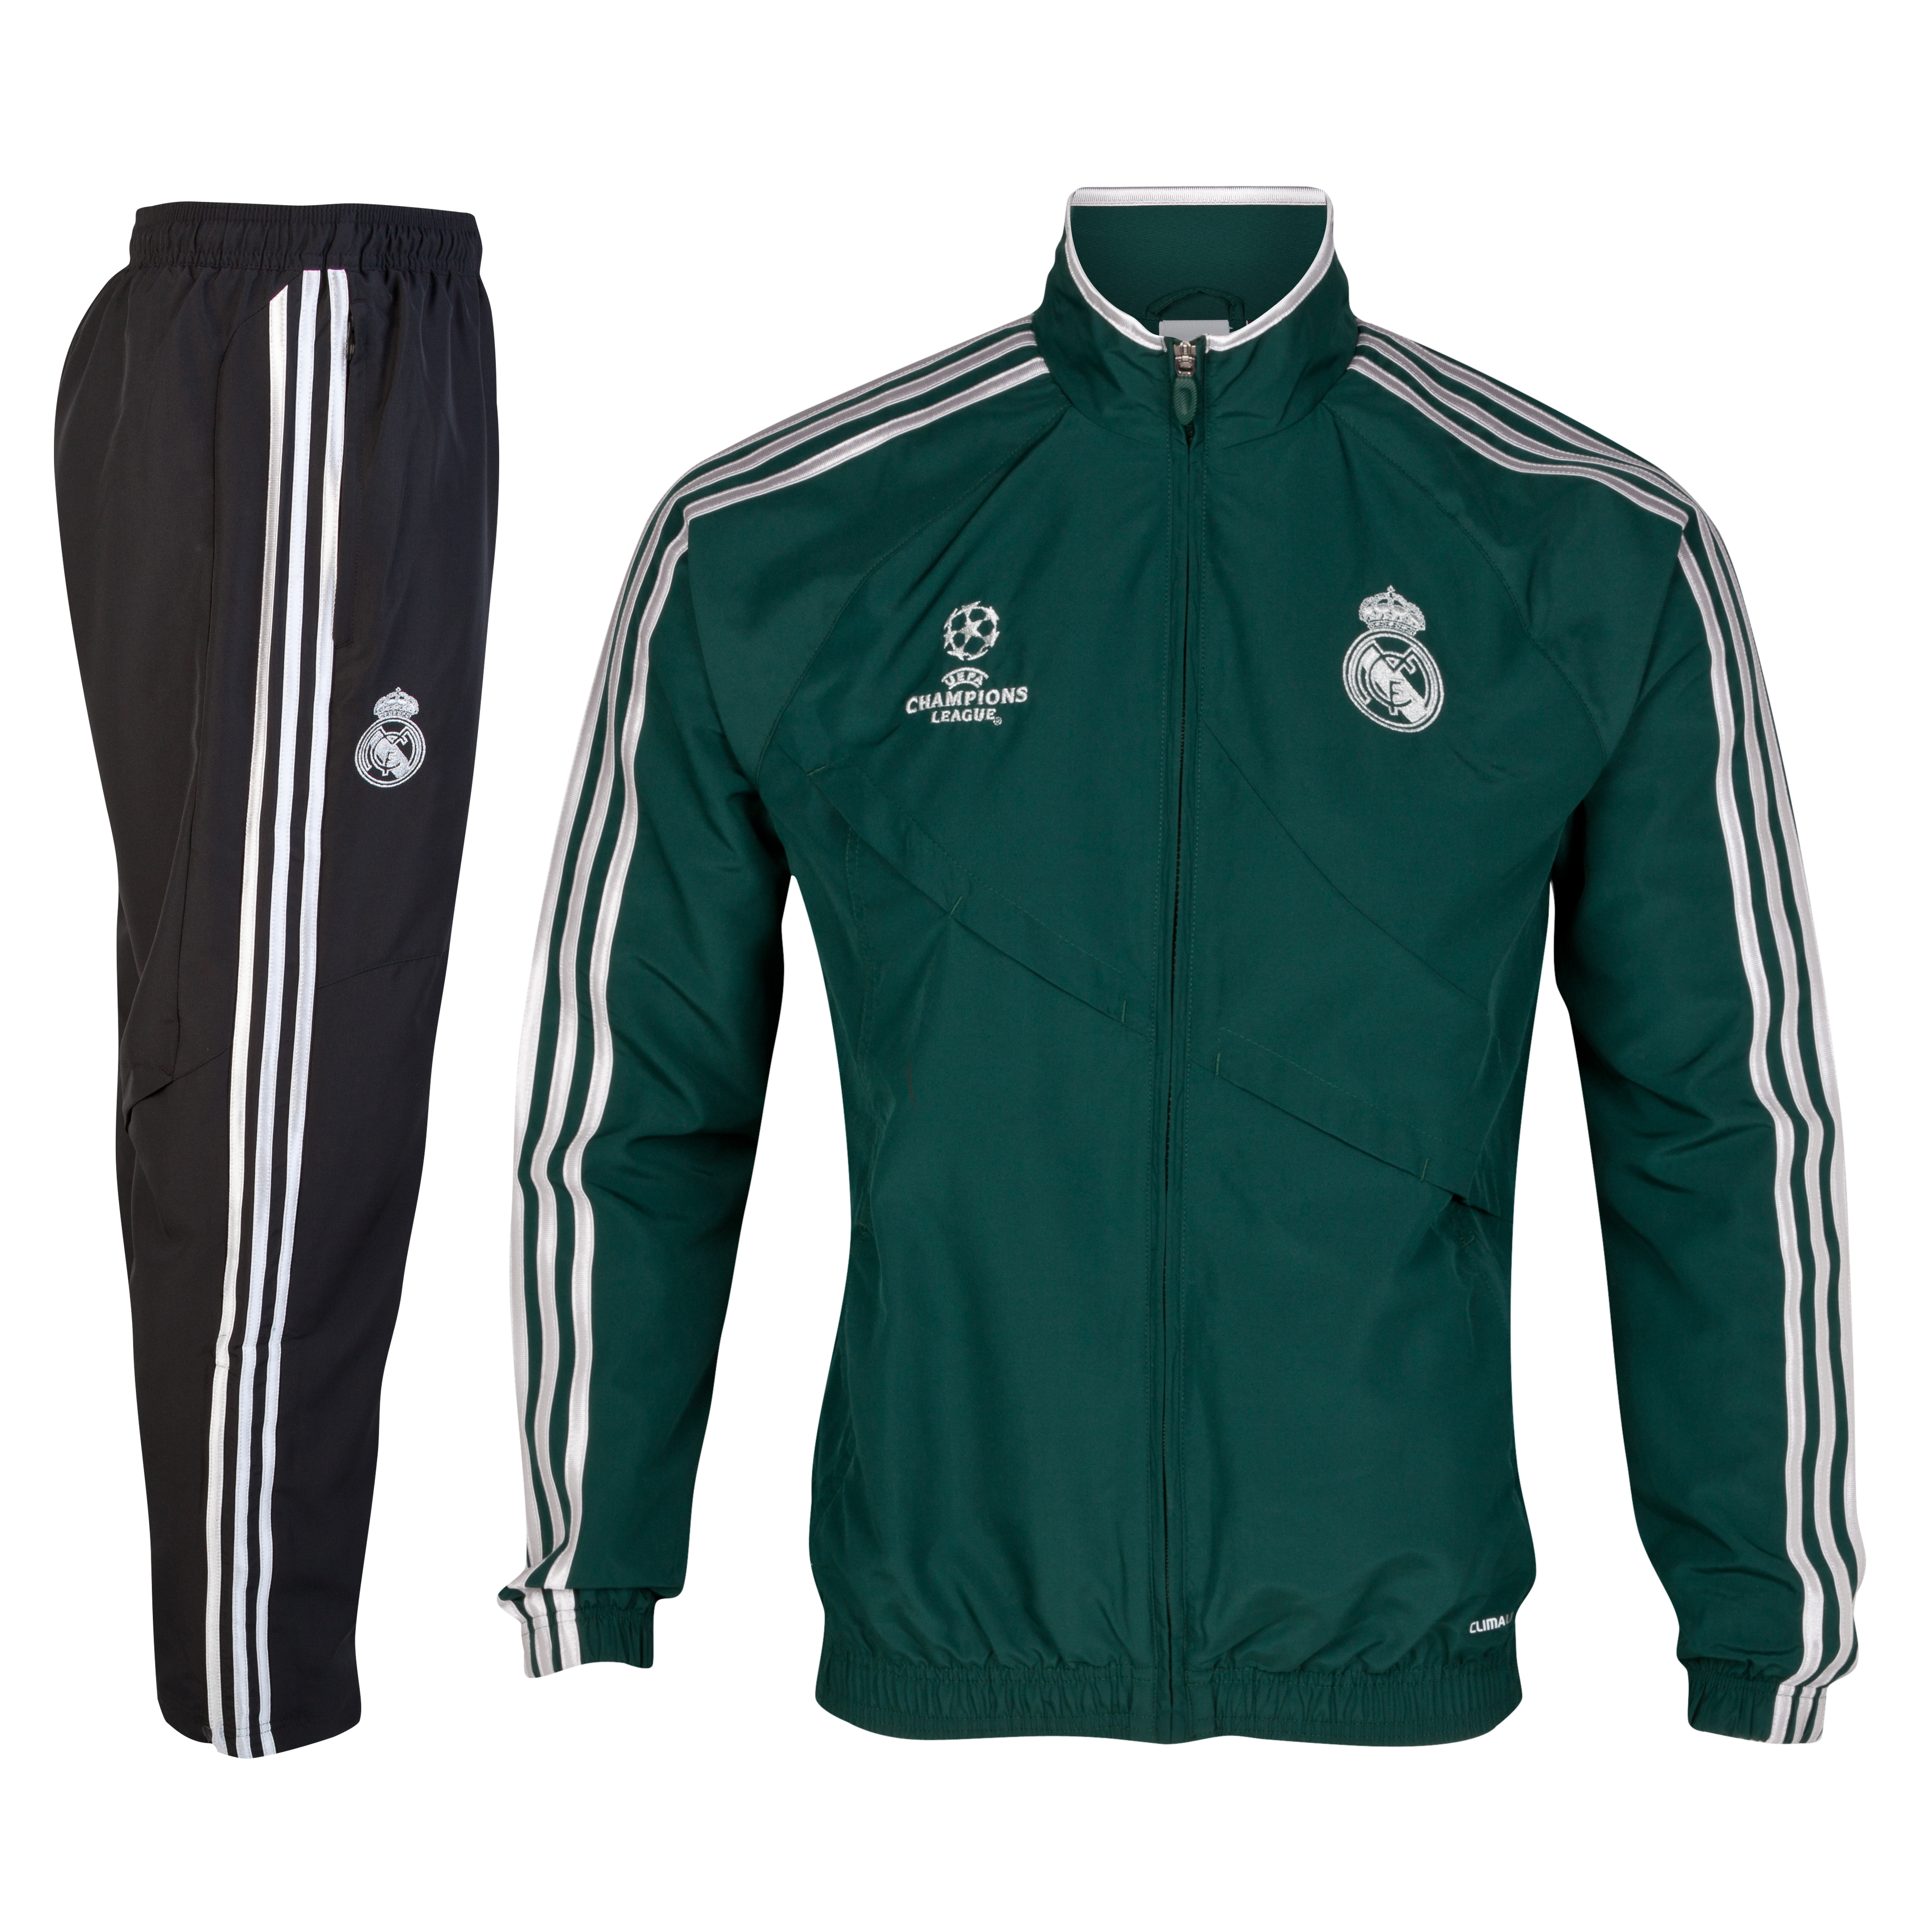 Real Madrid UCL Training Presentation Suit